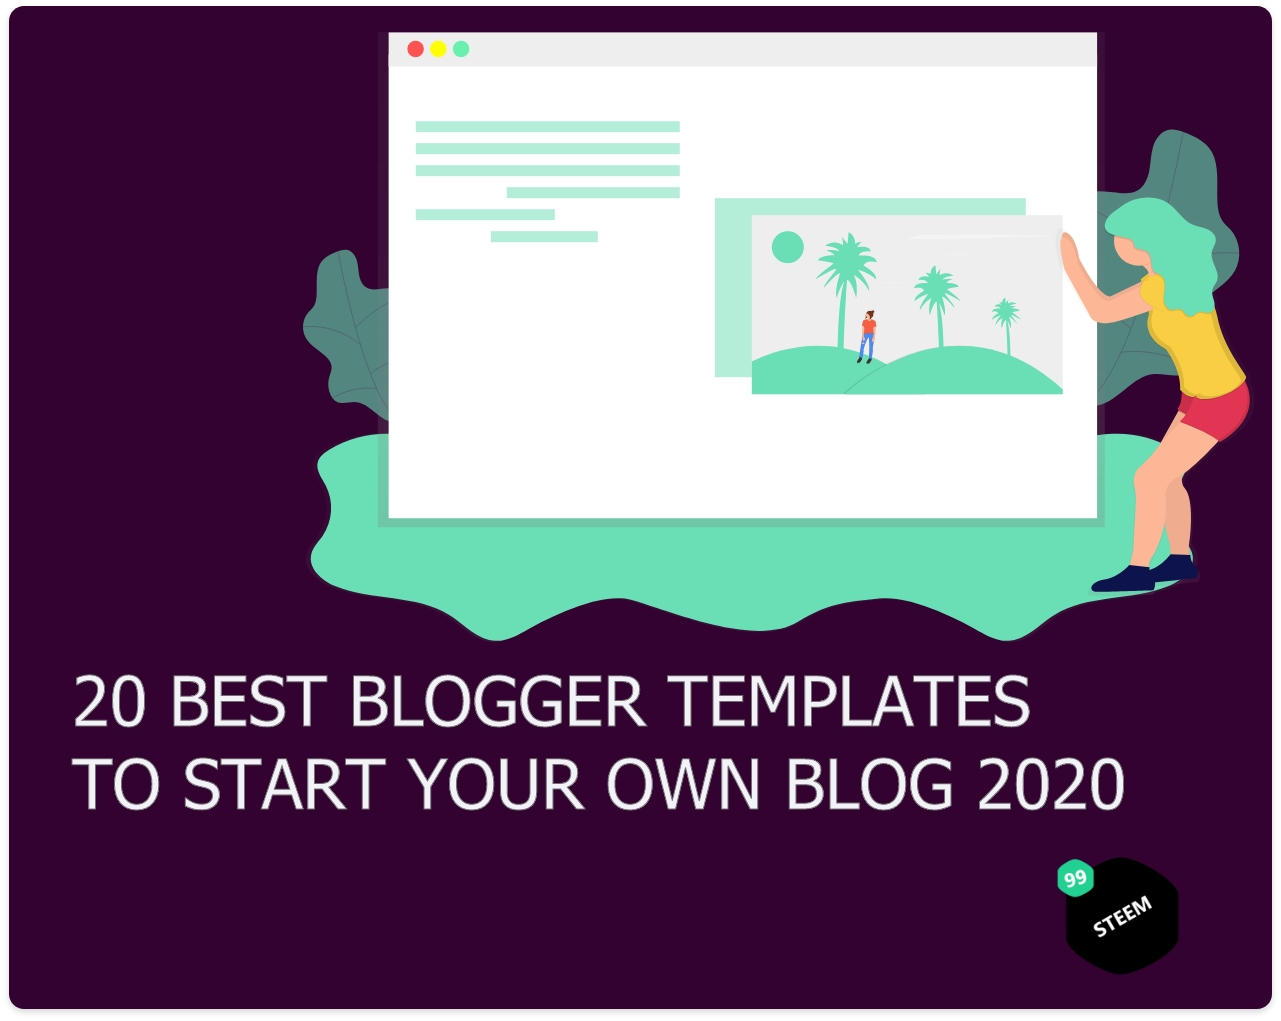 20 best blogger templates to start your own blog 2020